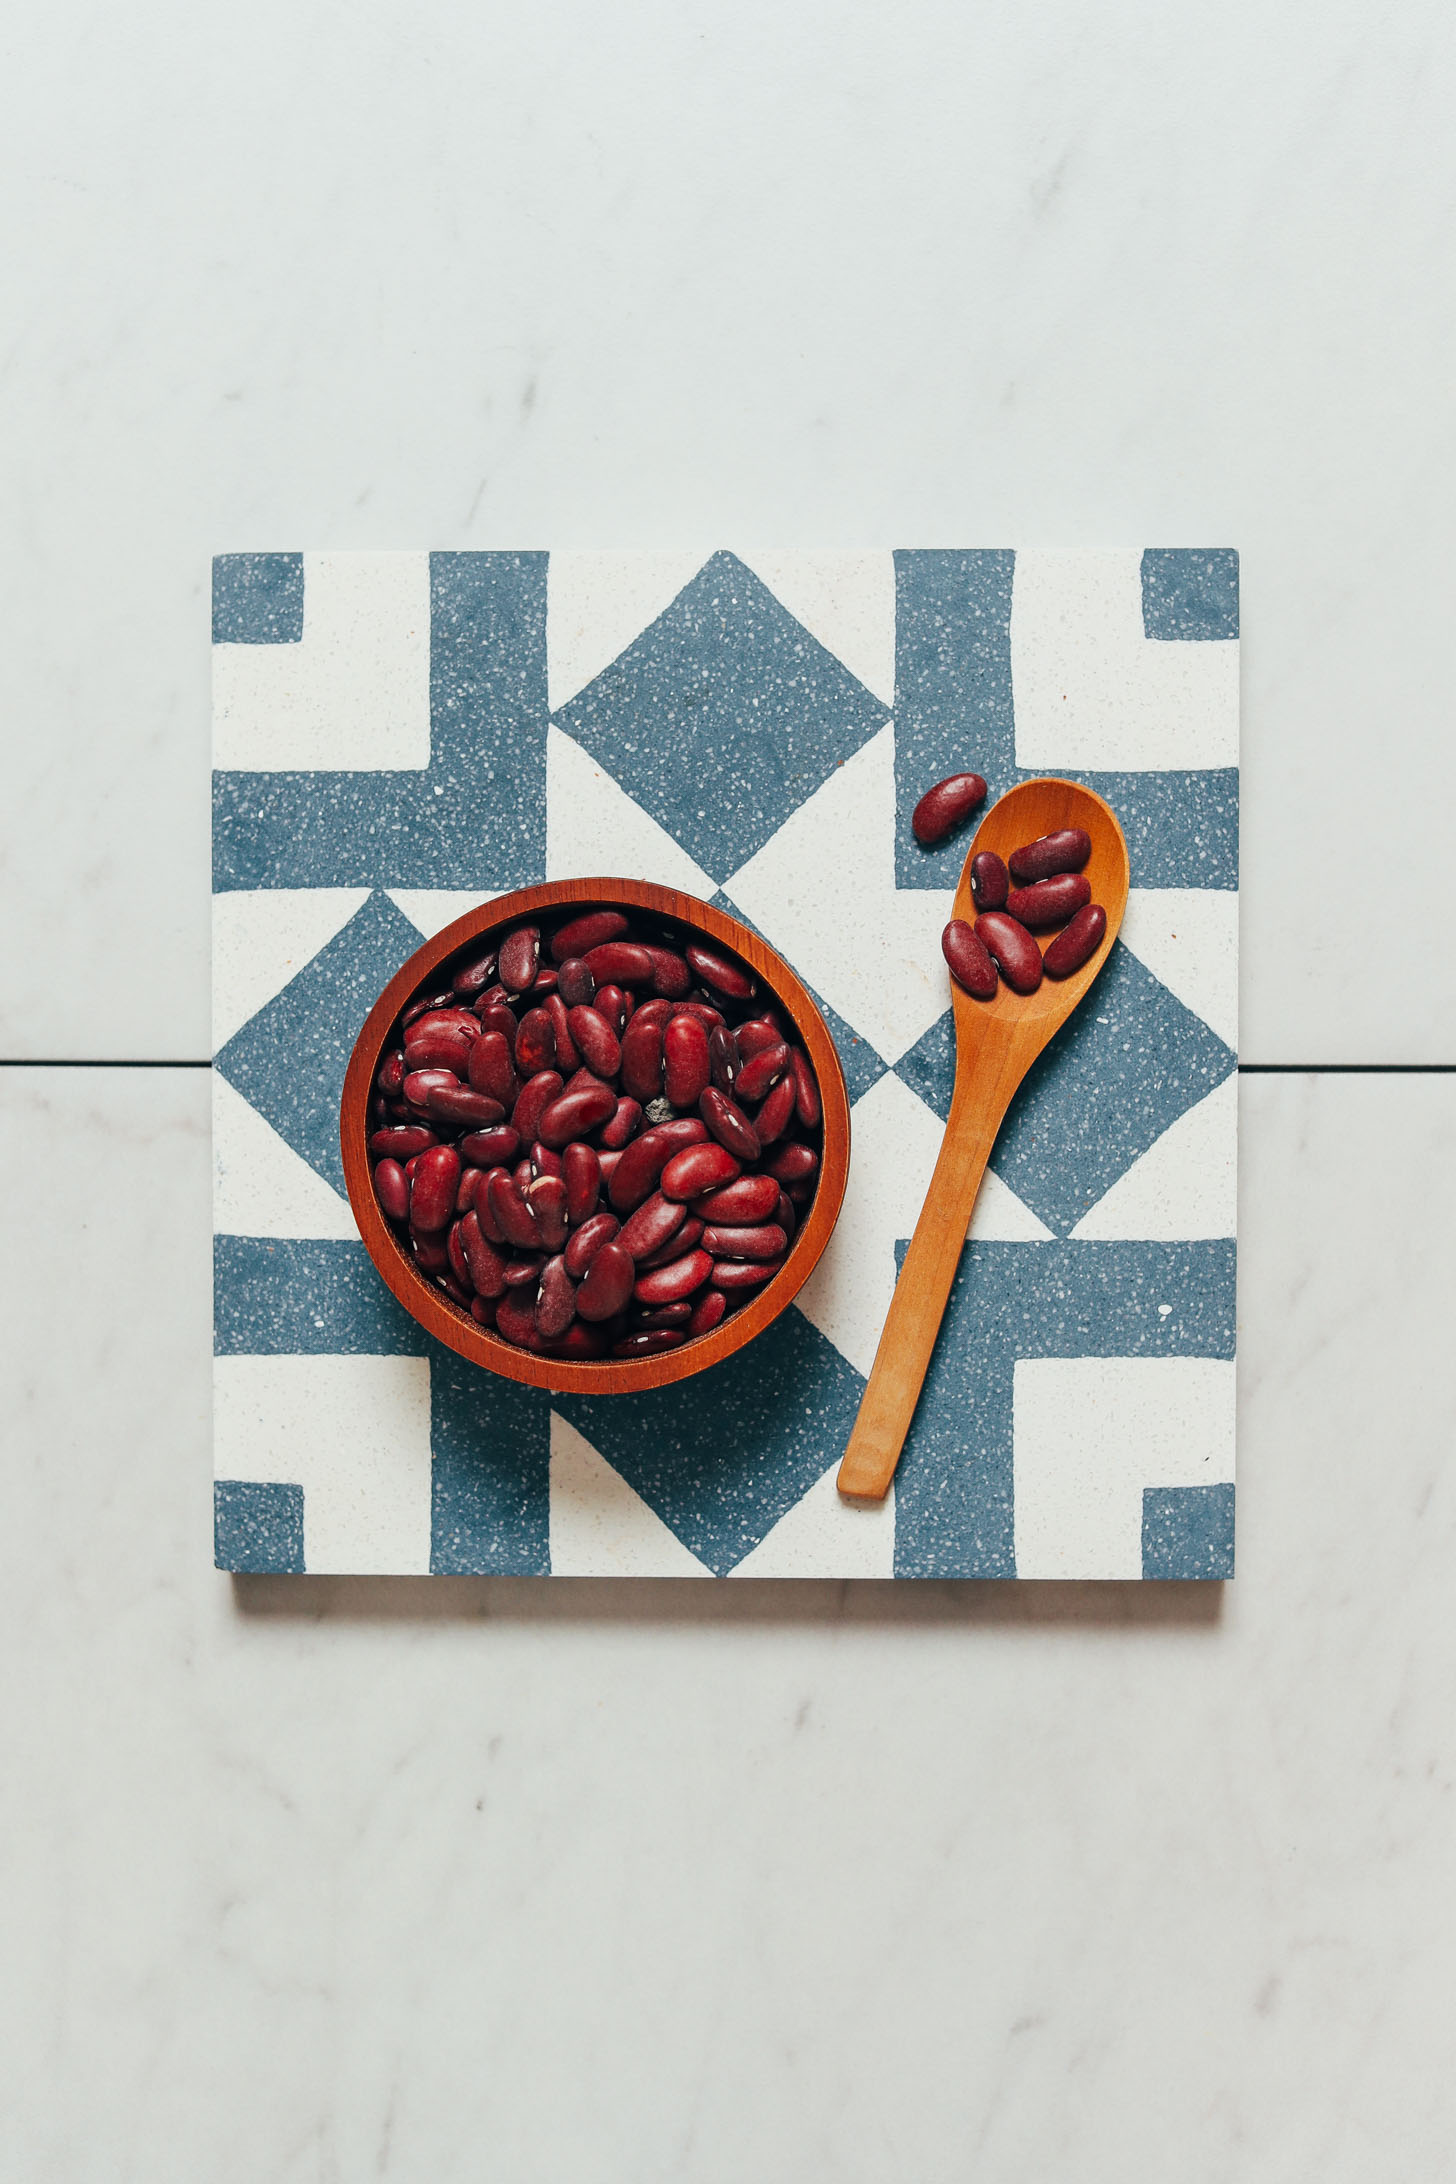 Spoon and bowl of red kidney beans